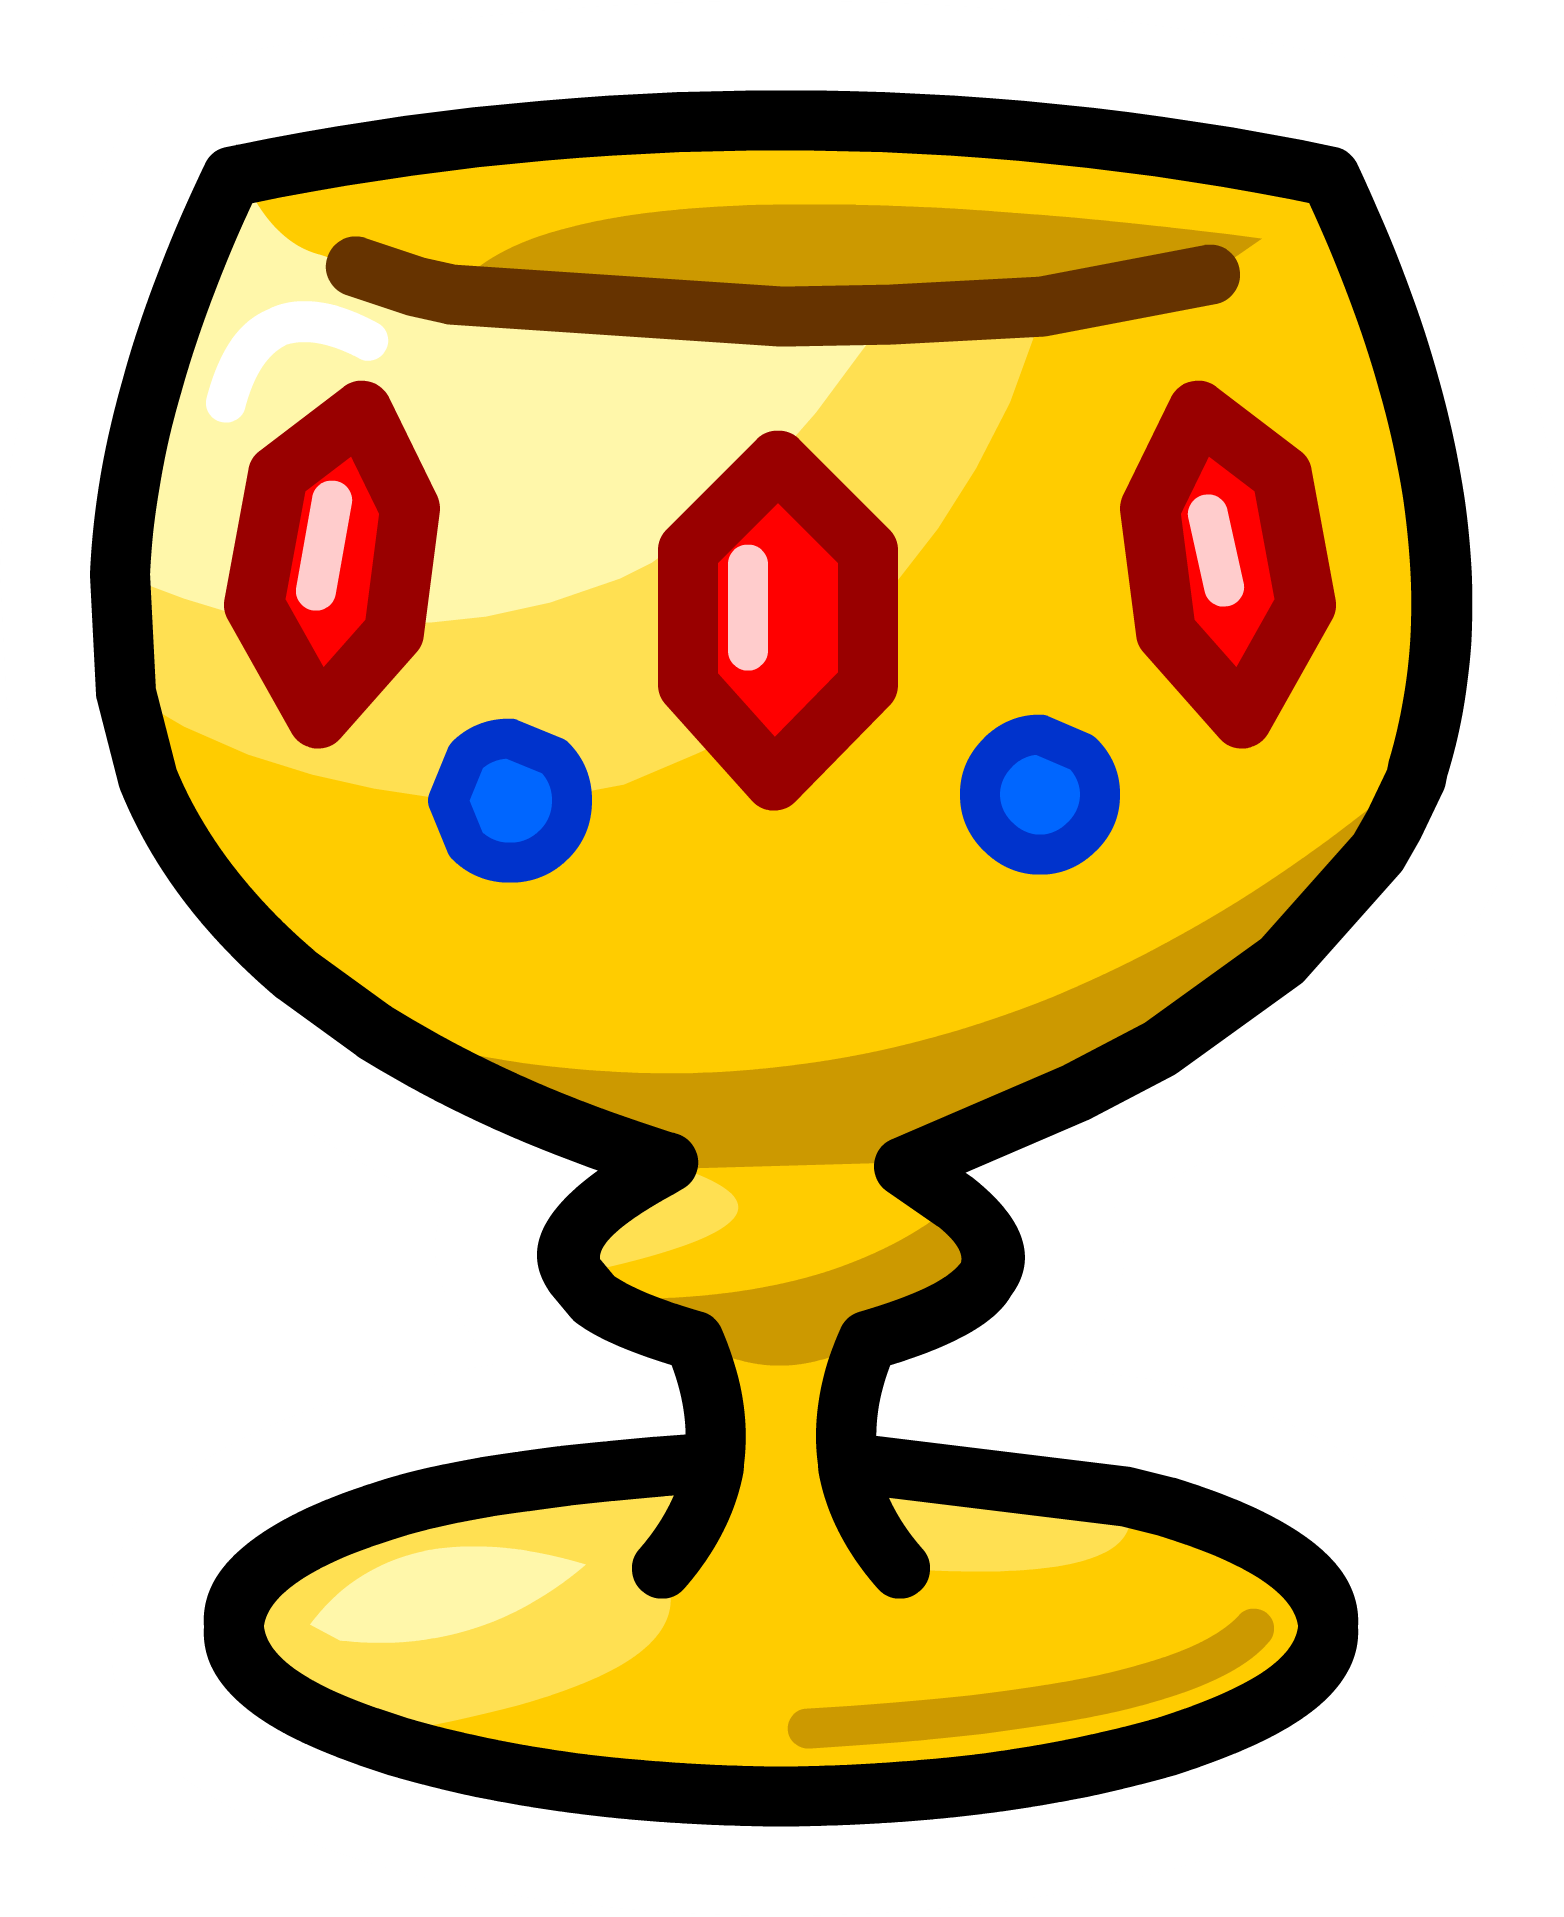 Medieval clipart villager. Cup transparent free for